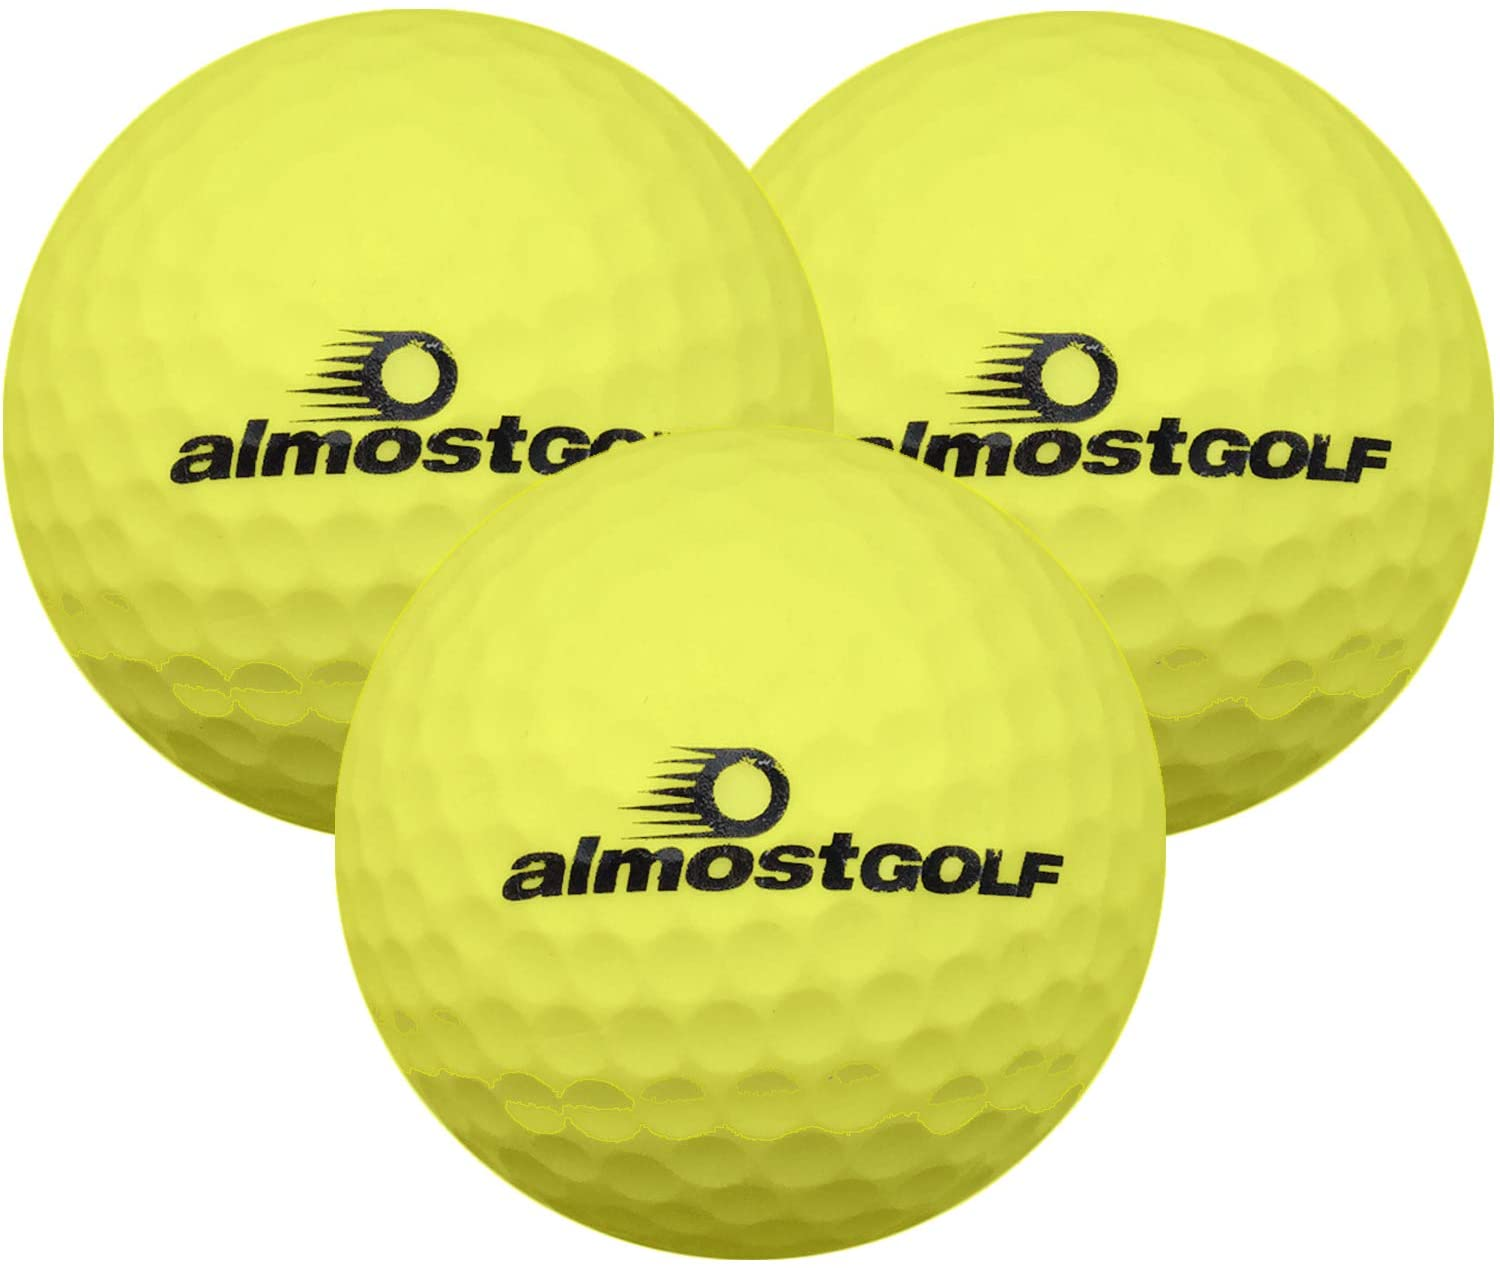 Almost Golf Limited Flight Golf Balls (3 Ball Pack) -Yellow - from in The Hole Golf